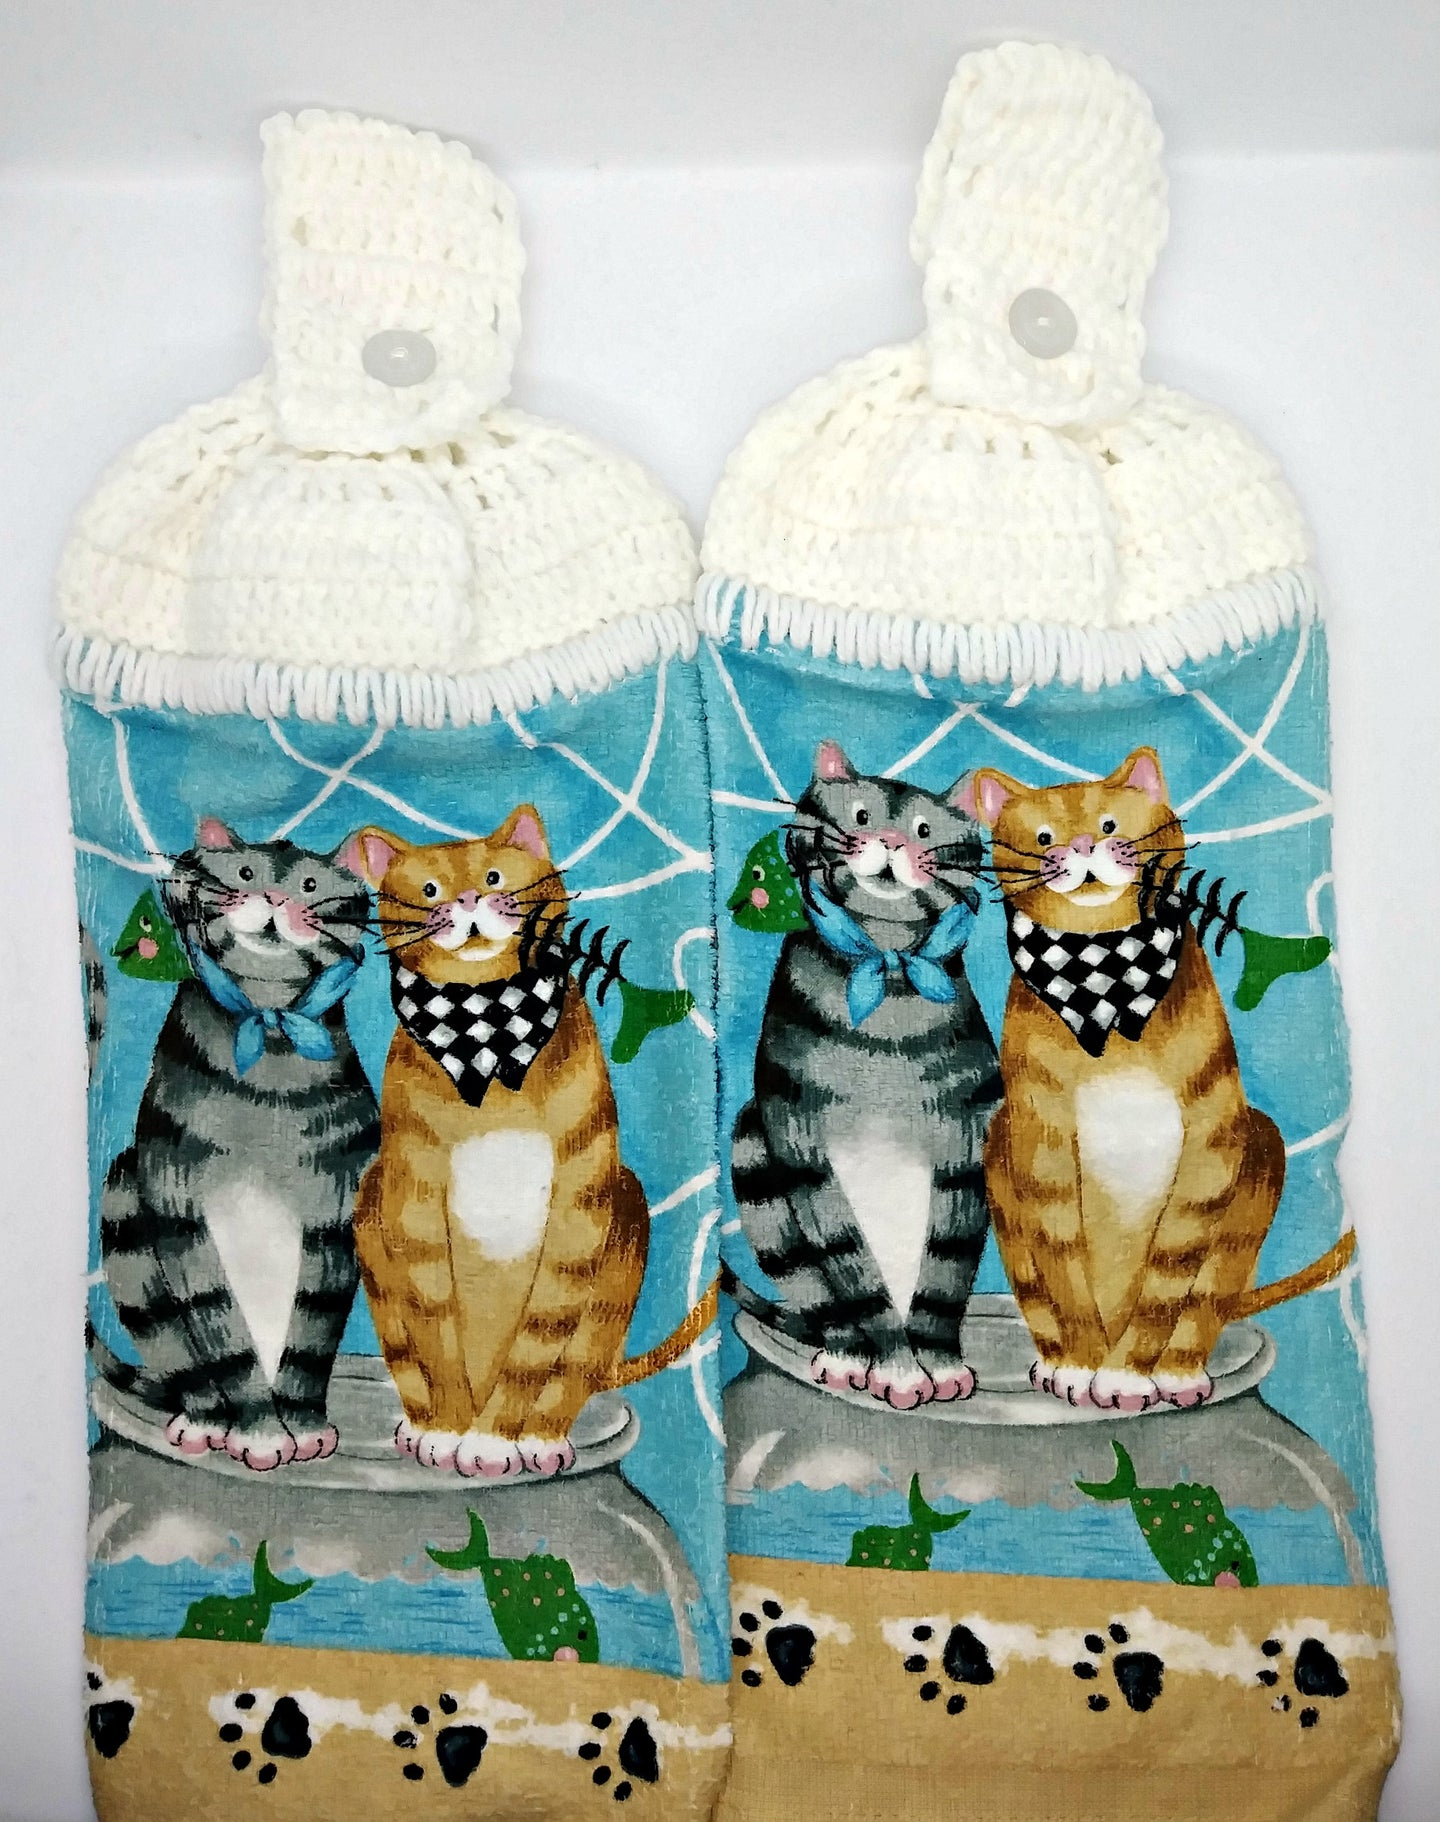 Kitty Cats with Fish Bones Hanging Kitchen Towel Set